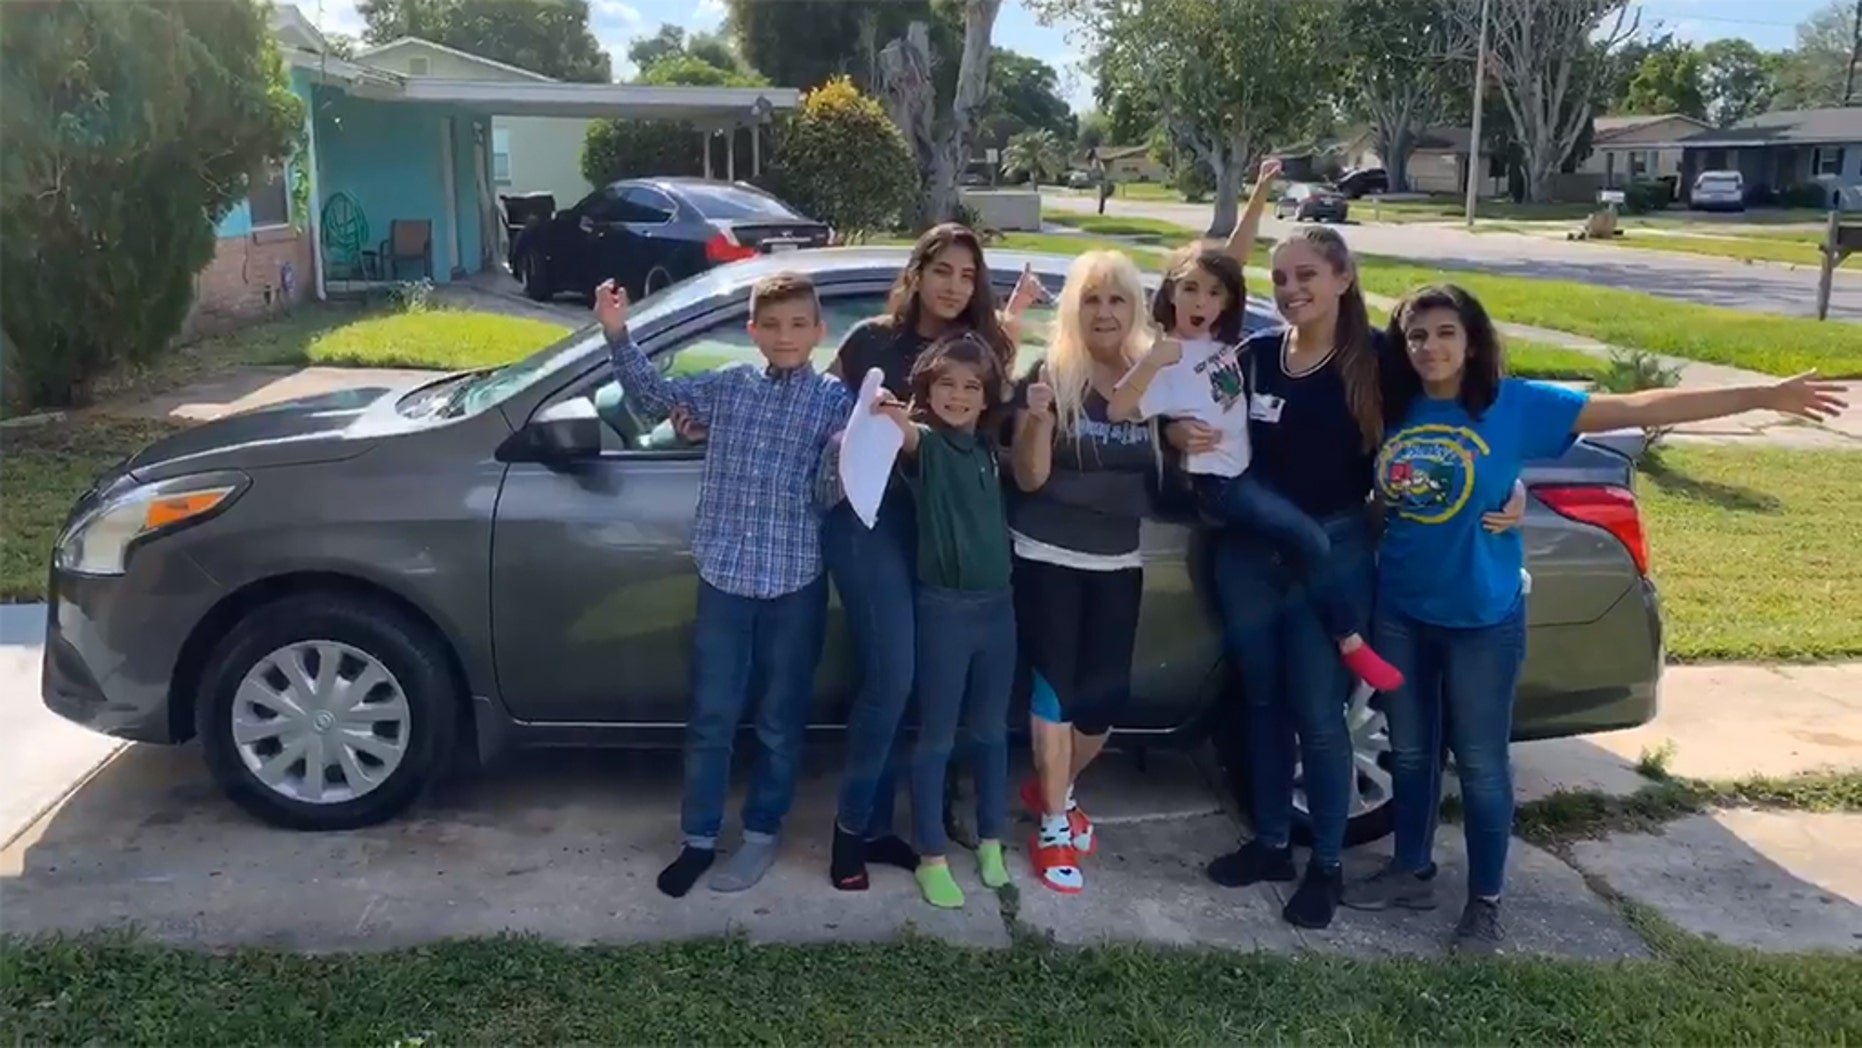 Samantha Rodriguez, 20, who became the caretaker for her five younger siblings after the tragic deaths of both parents, was gifted a new car.